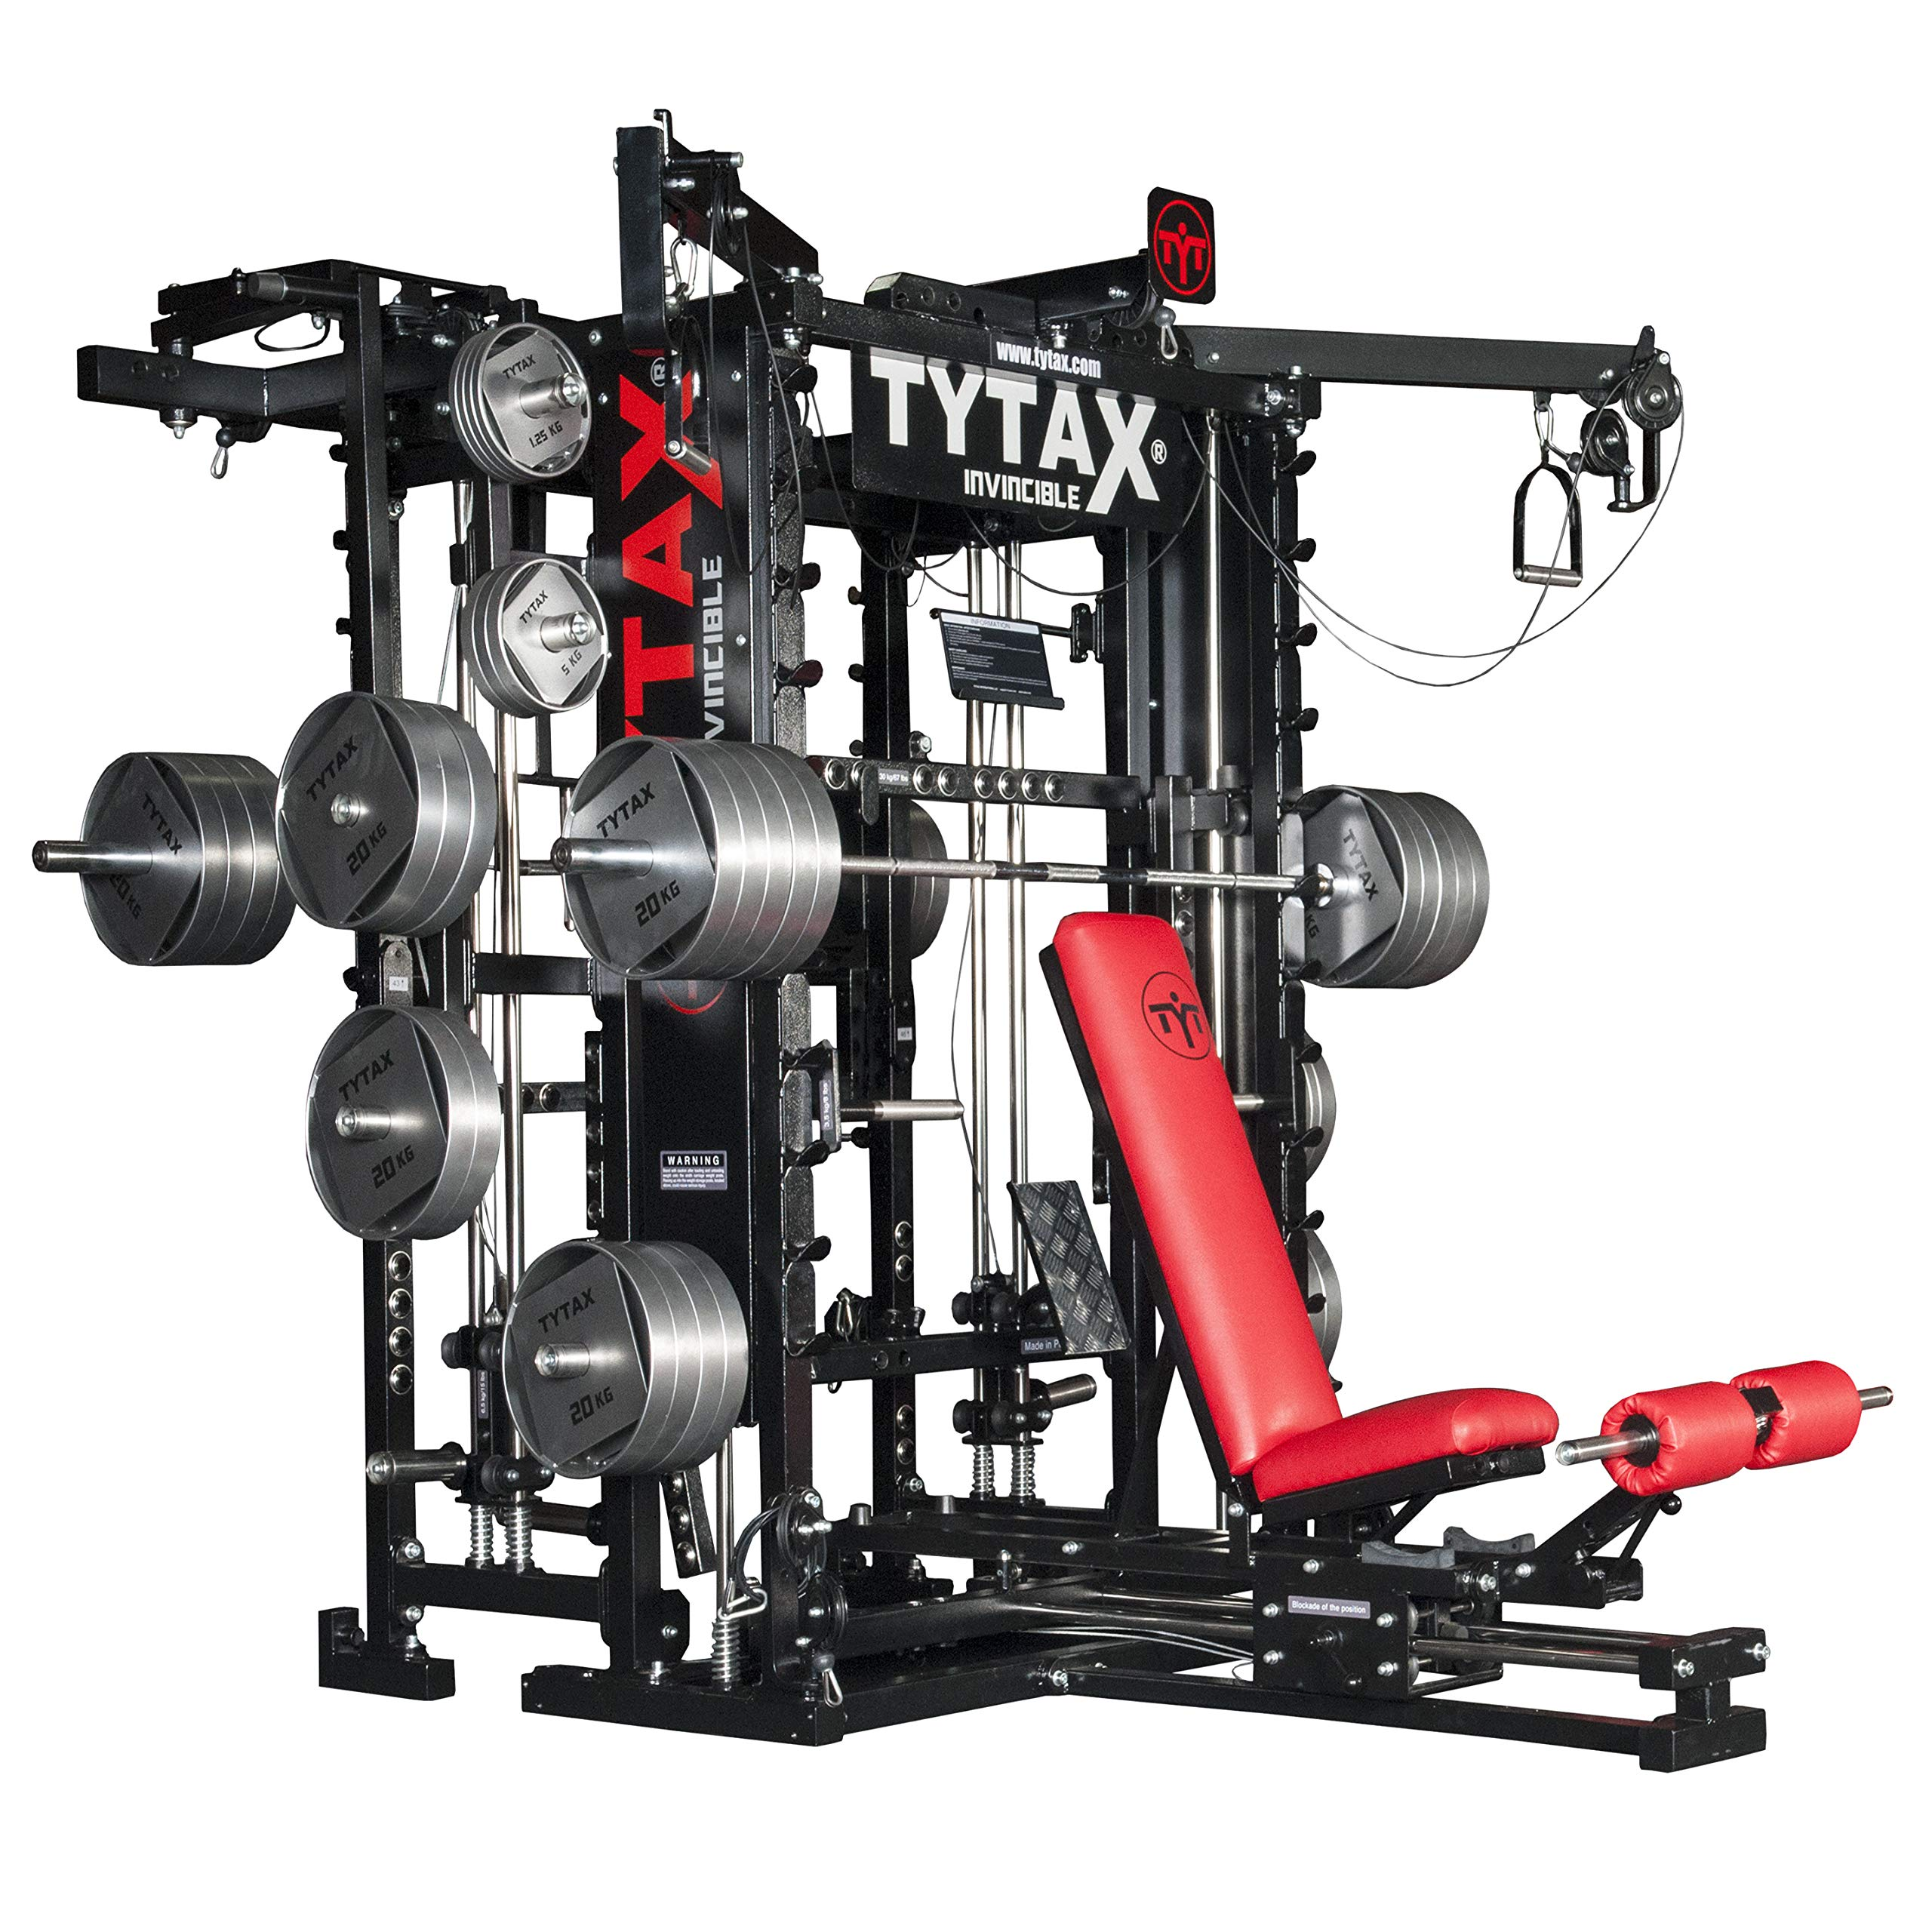 450 Exercises - T1-X - Professional Gym Equipment - Made in Europe …